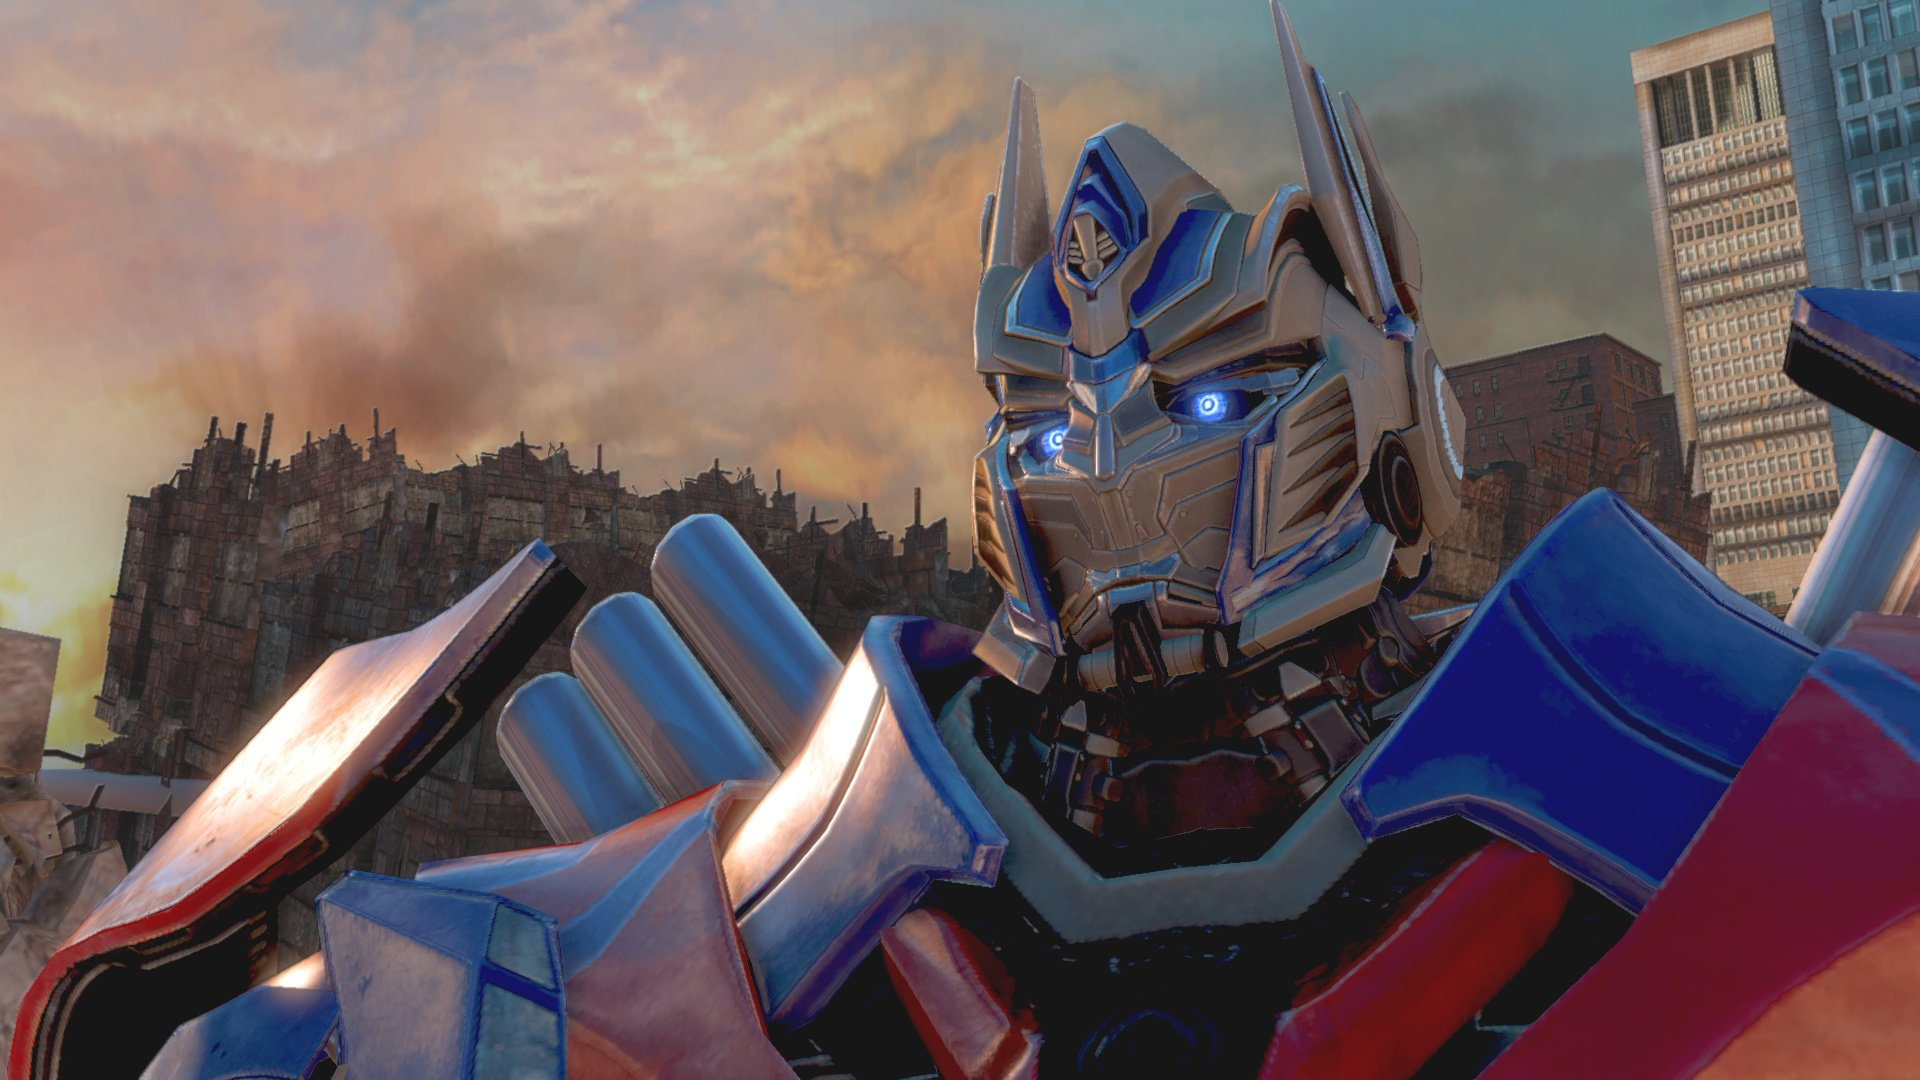 Activision replenish energon with transformers rise of the dark spark